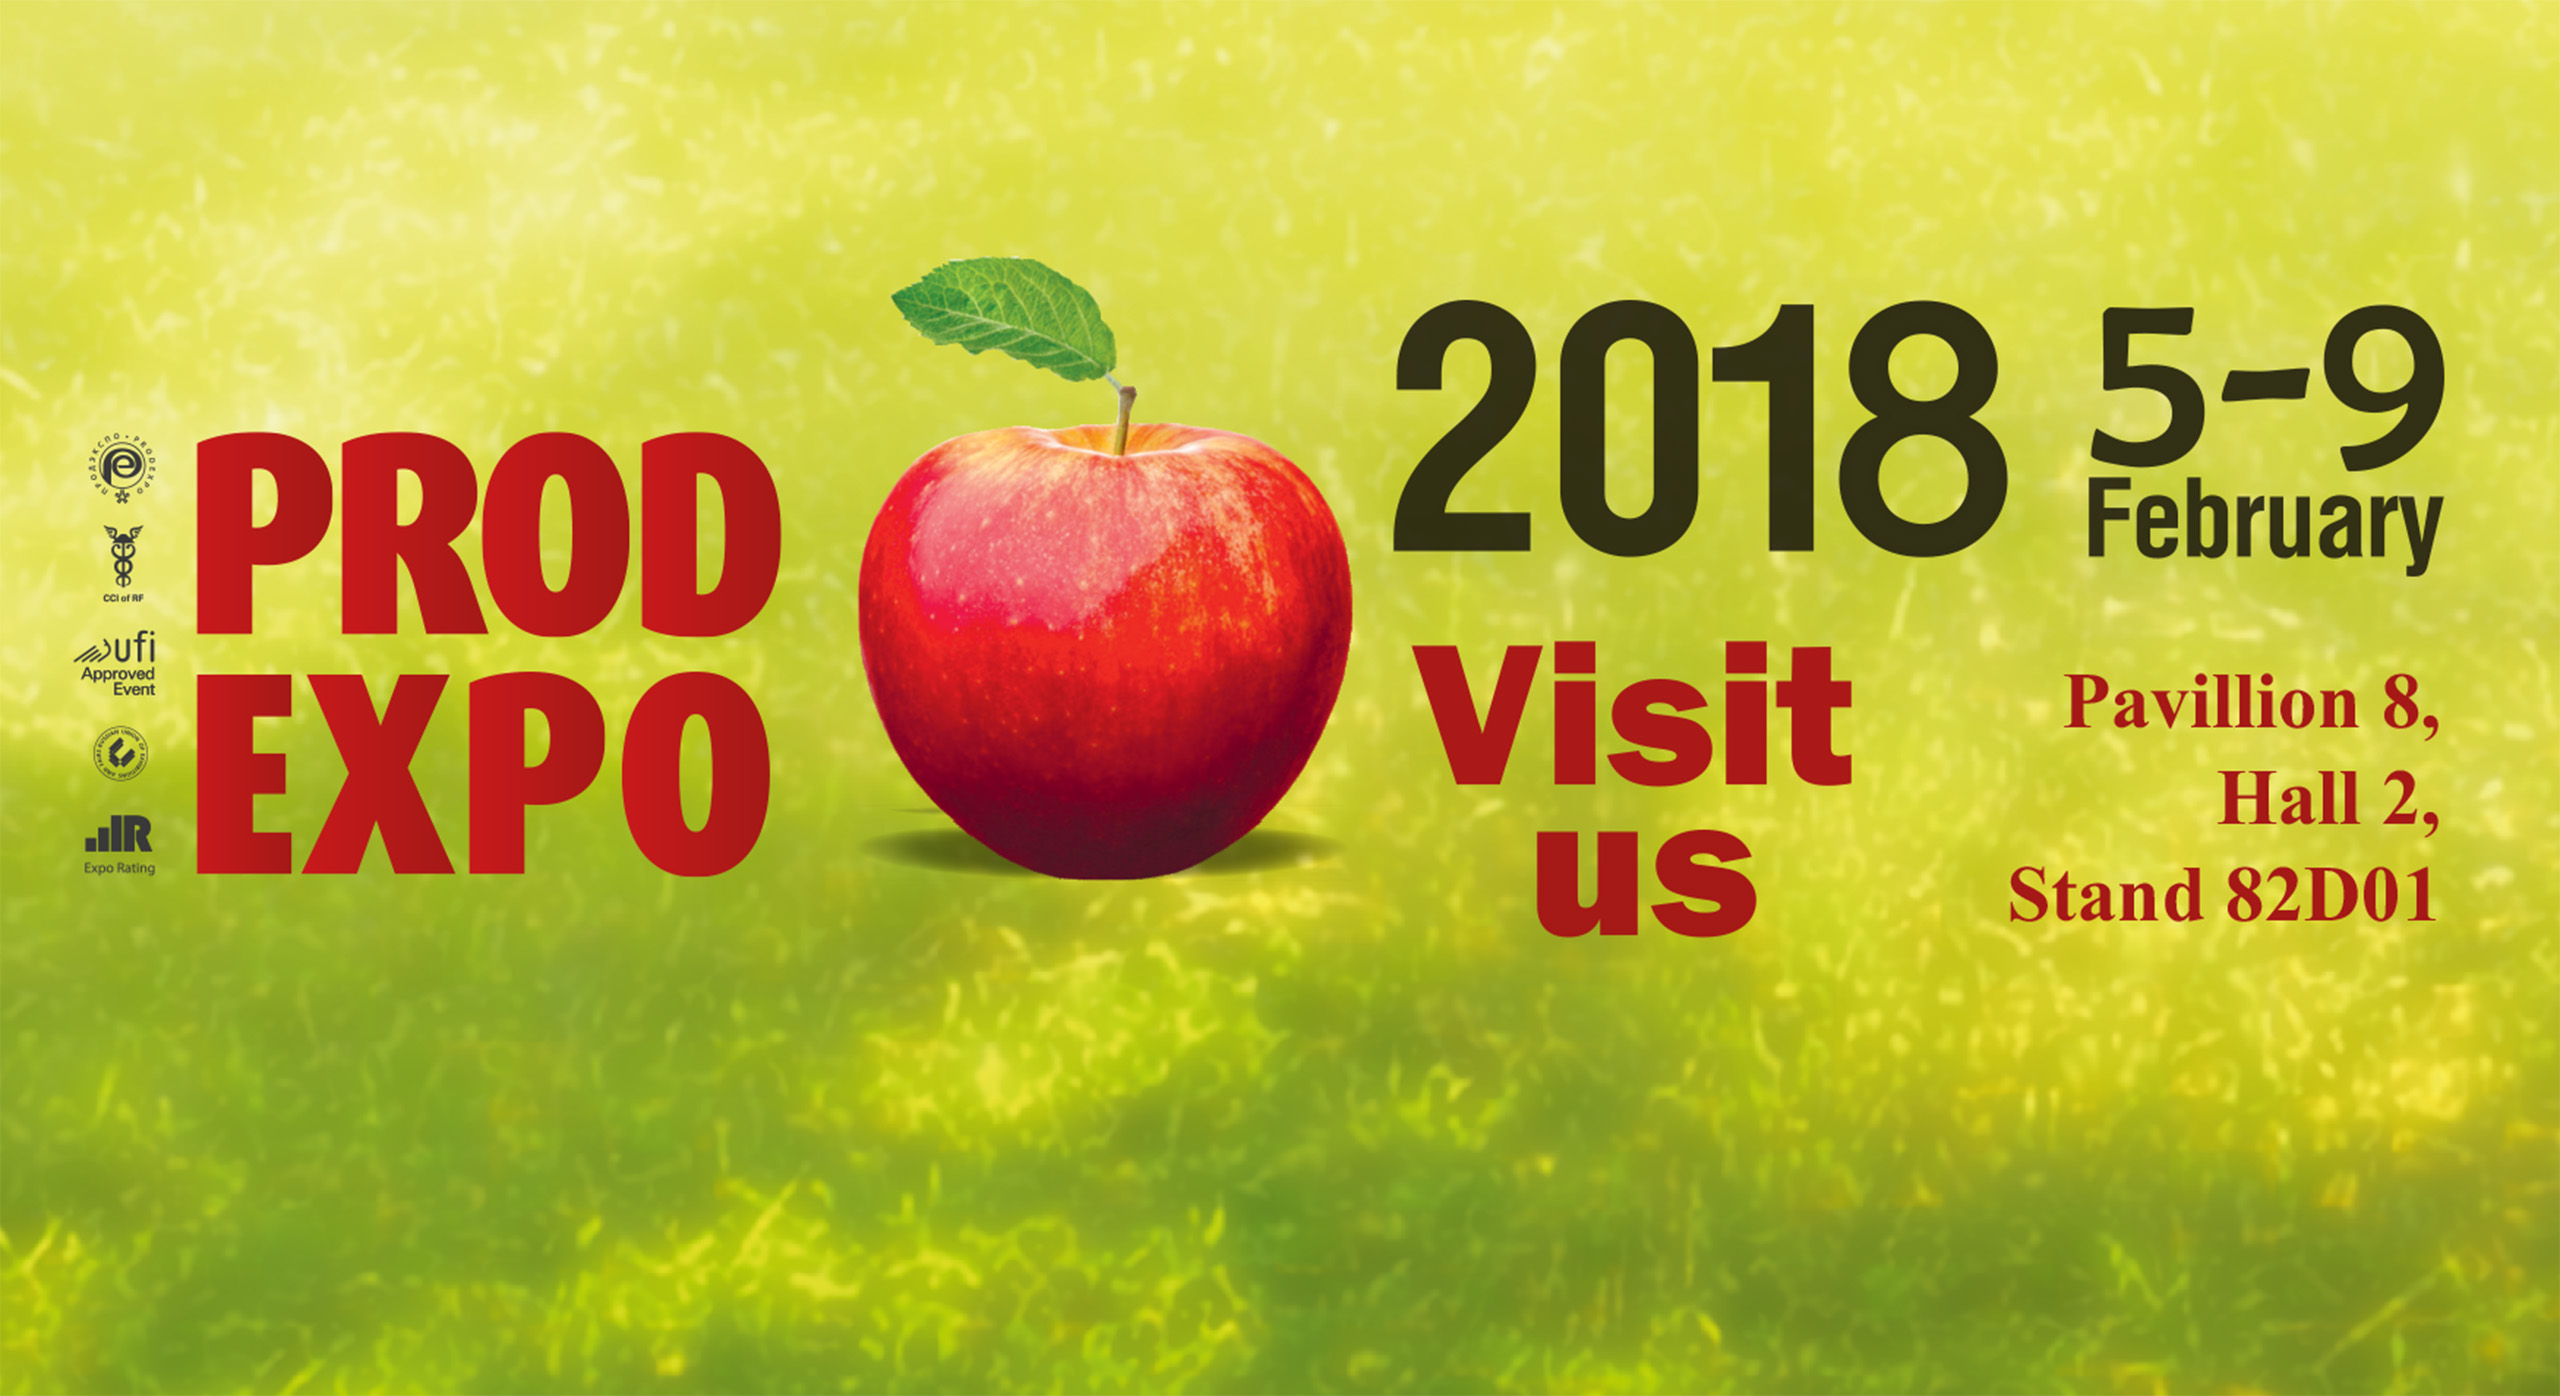 PRODEXPO 2018, MOSCOW – International Food Exhibition